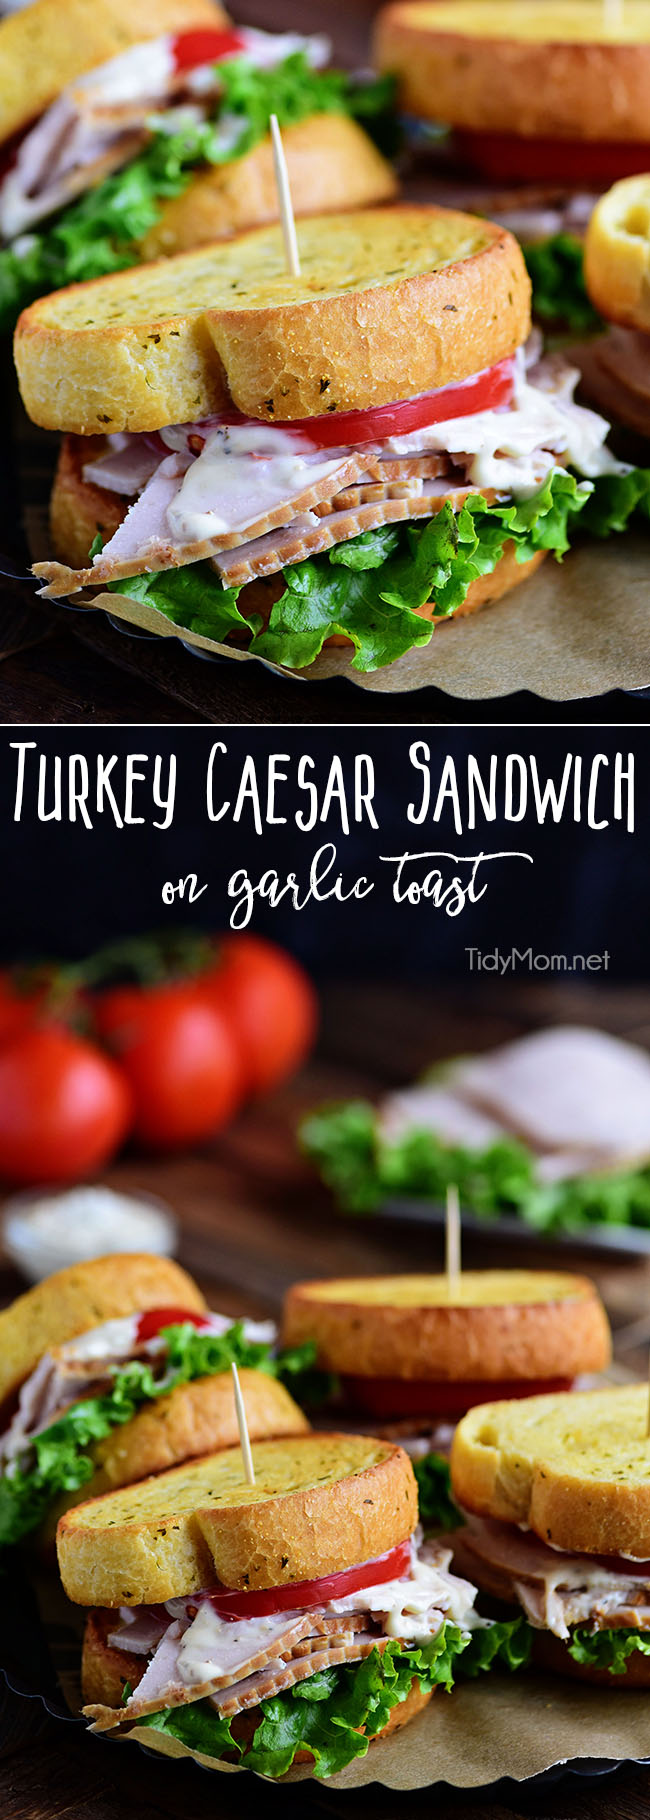 Texas garlic toast turns an ordinary Turkey Caesar Sandwich into something special. It's the perfect way to use up leftover Thanksgiving turkey or enjoy any day with deli sliced turkey! Print recipe at TidyMom.net #turkey #sandwich #garlictoast #thanksgiving